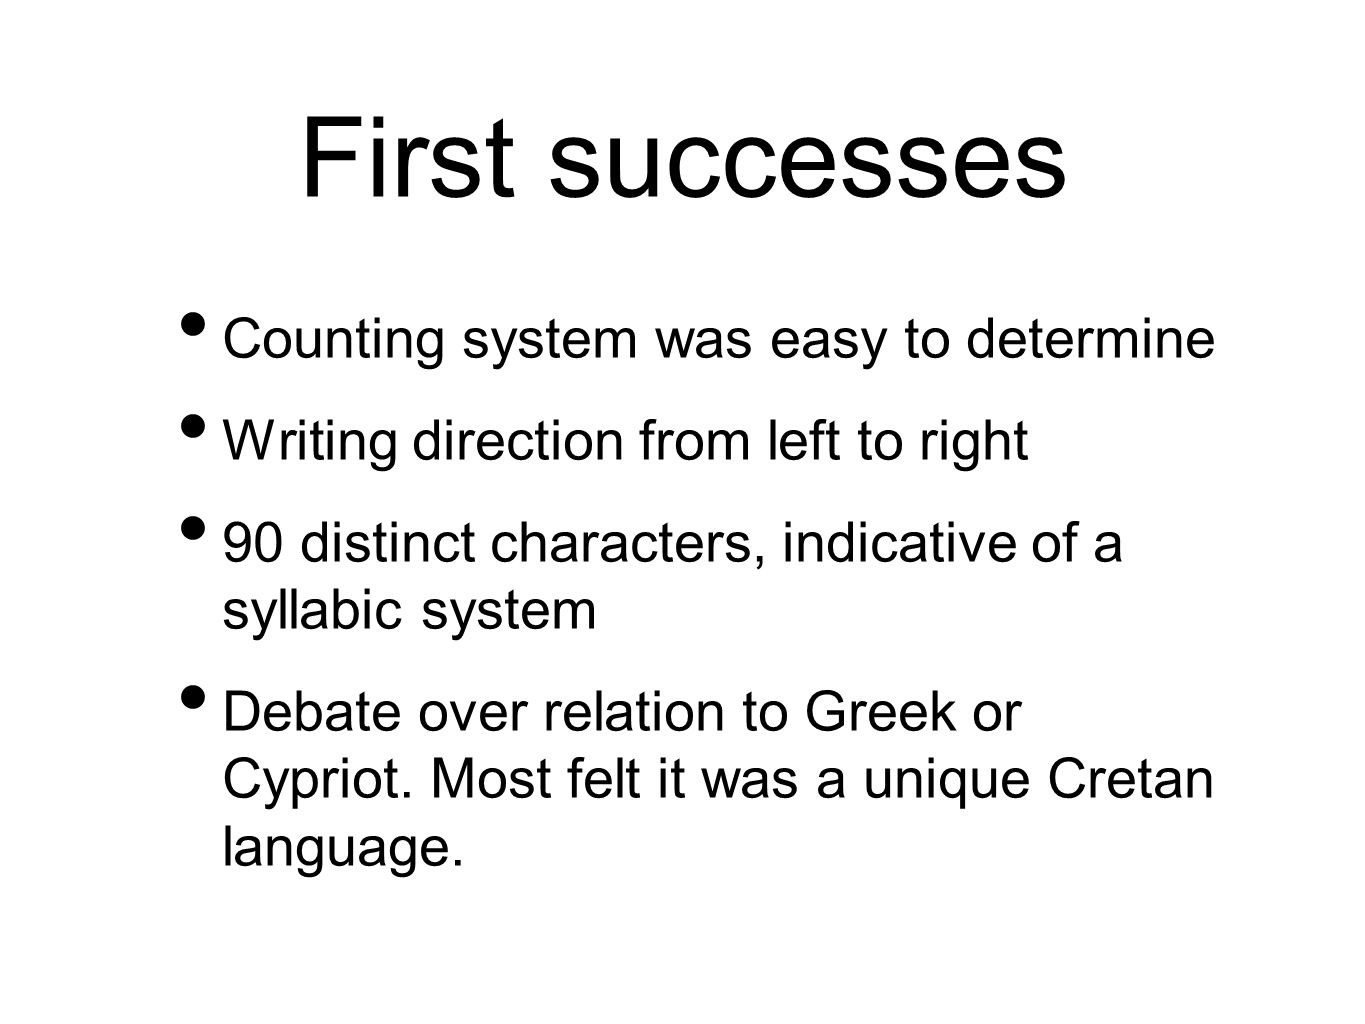 First successes Counting system was easy to determine Writing direction from left to right 90 distinct characters, indicative of a syllabic system Debate over relation to Greek or Cypriot.